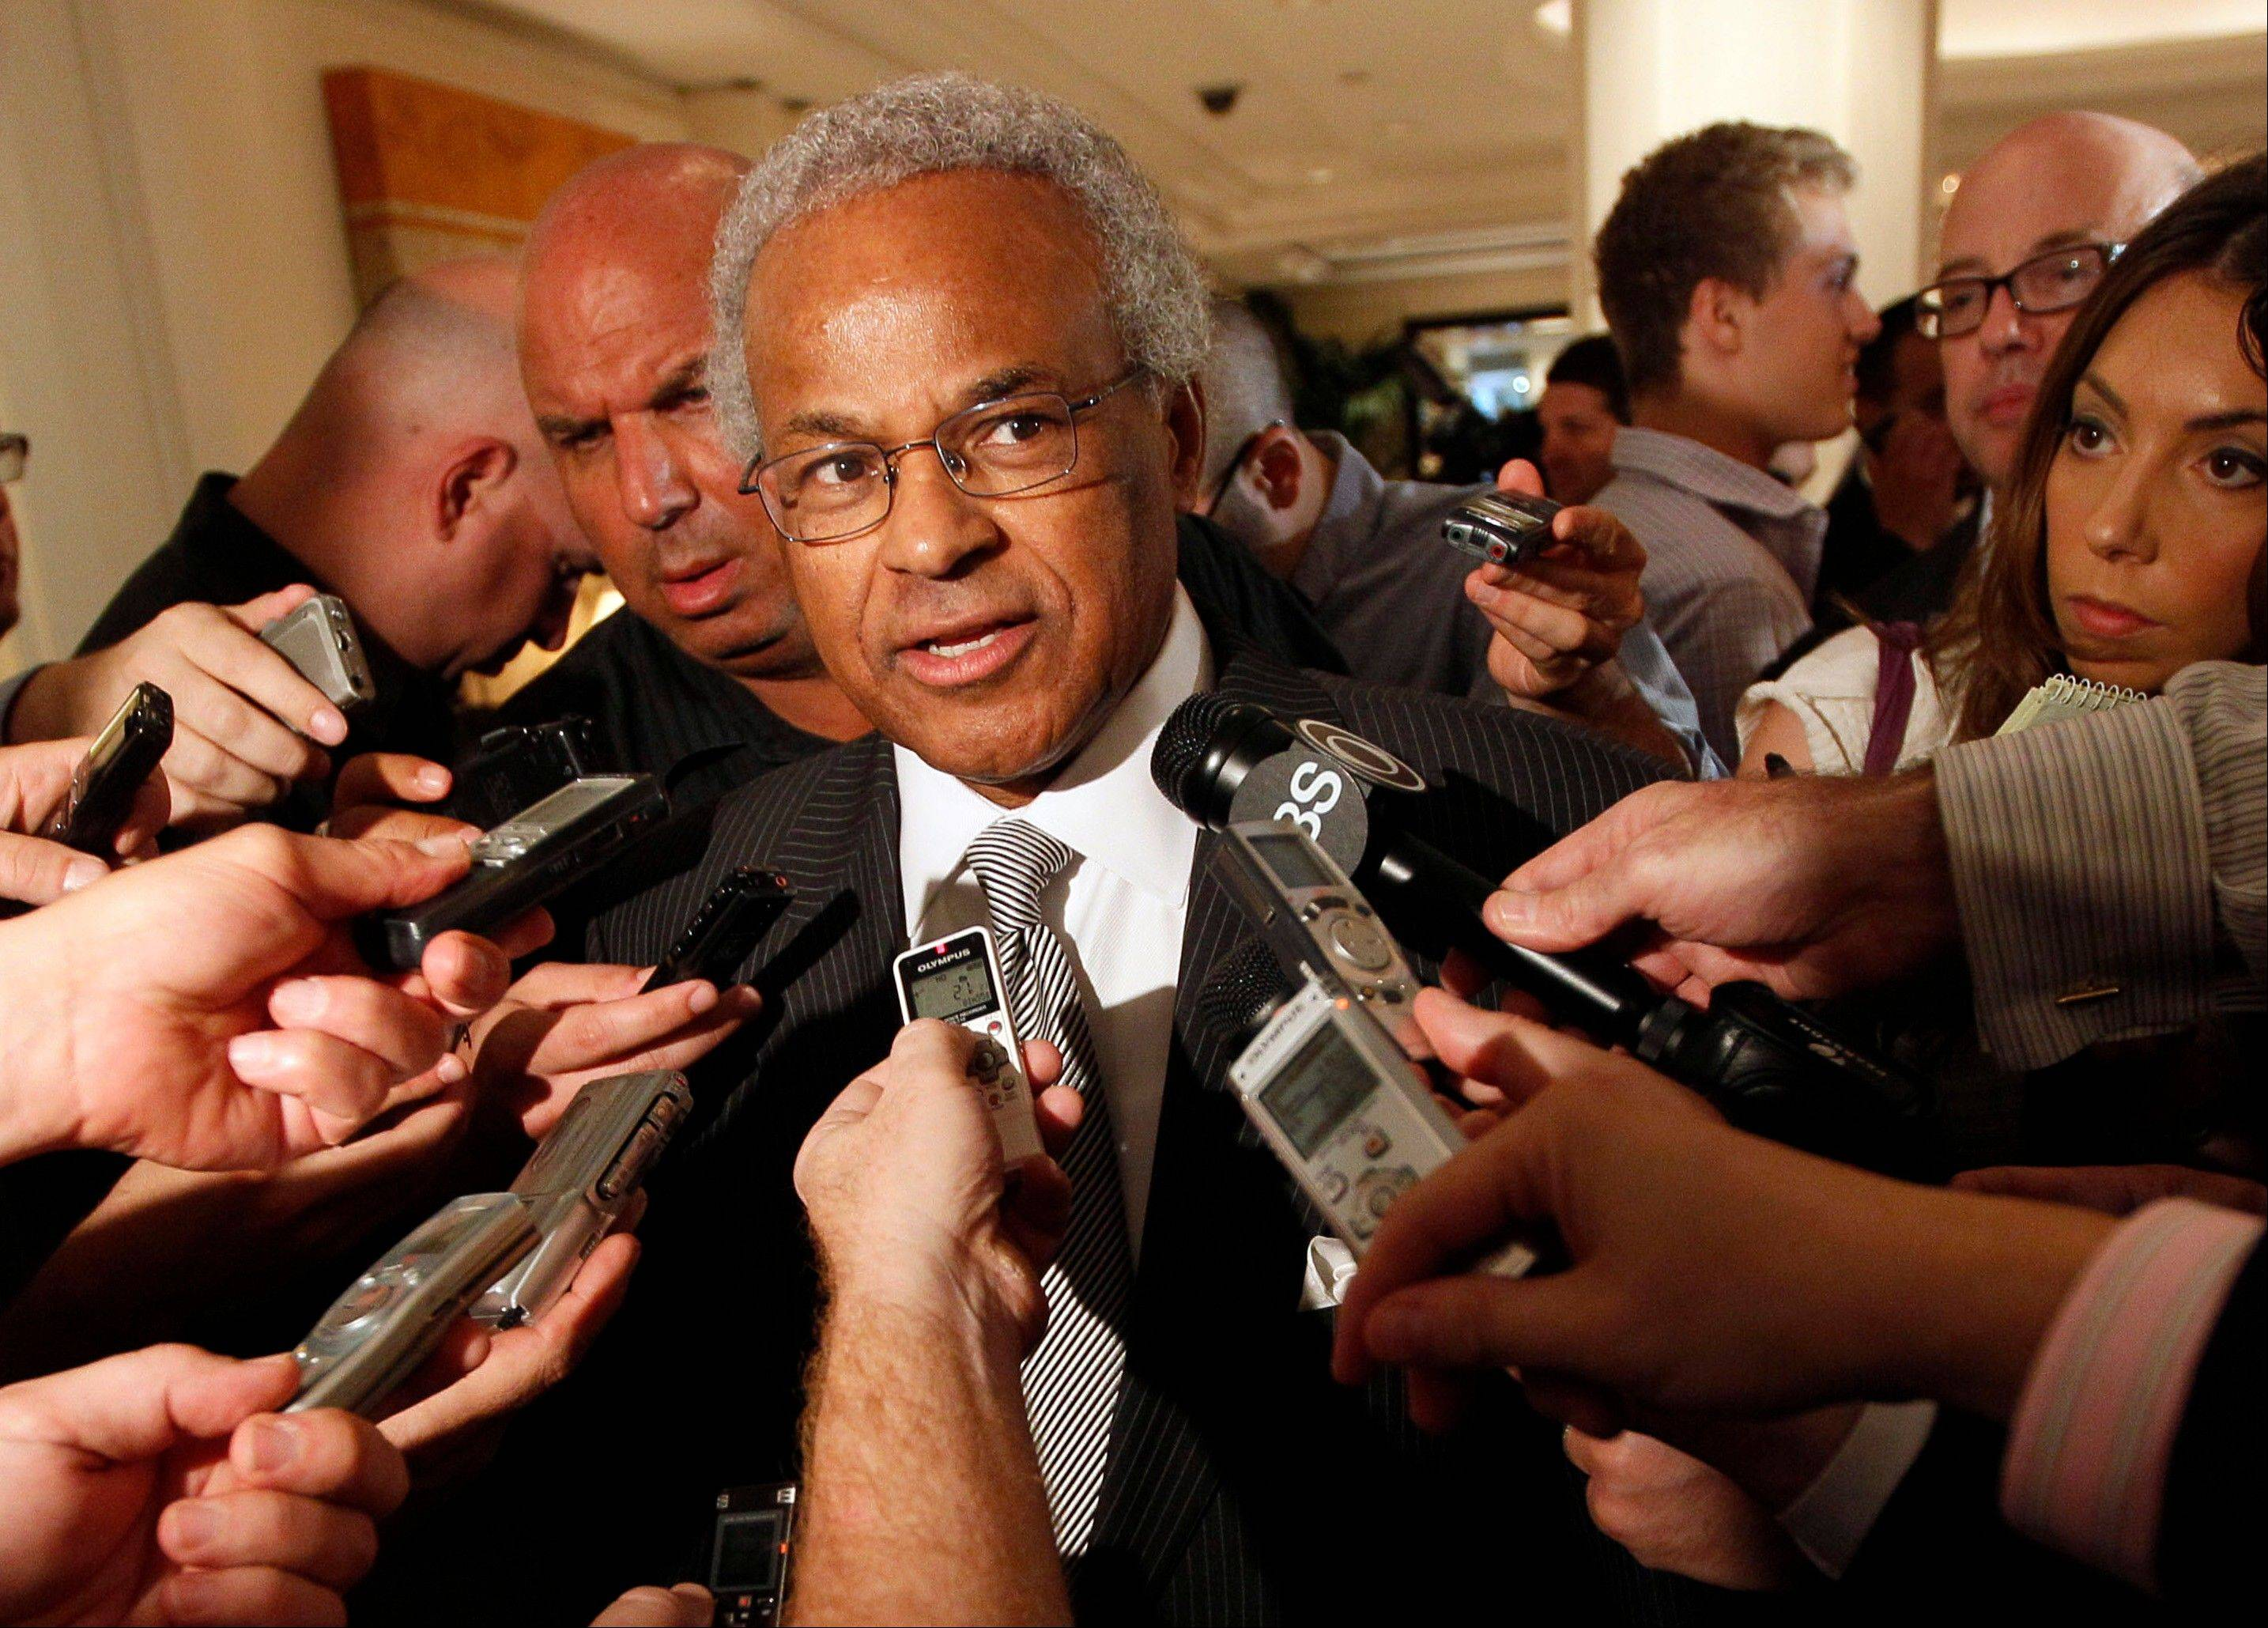 FILE - In this June 30, 2011, file photo,†NBA Players Union chief Billy Hunter speaks to reporters after a meeting with the NBA in New York. Hunter has been unanimously voted out as executive director of the NBA players' association, Saturday, Feb. 16, 2013.